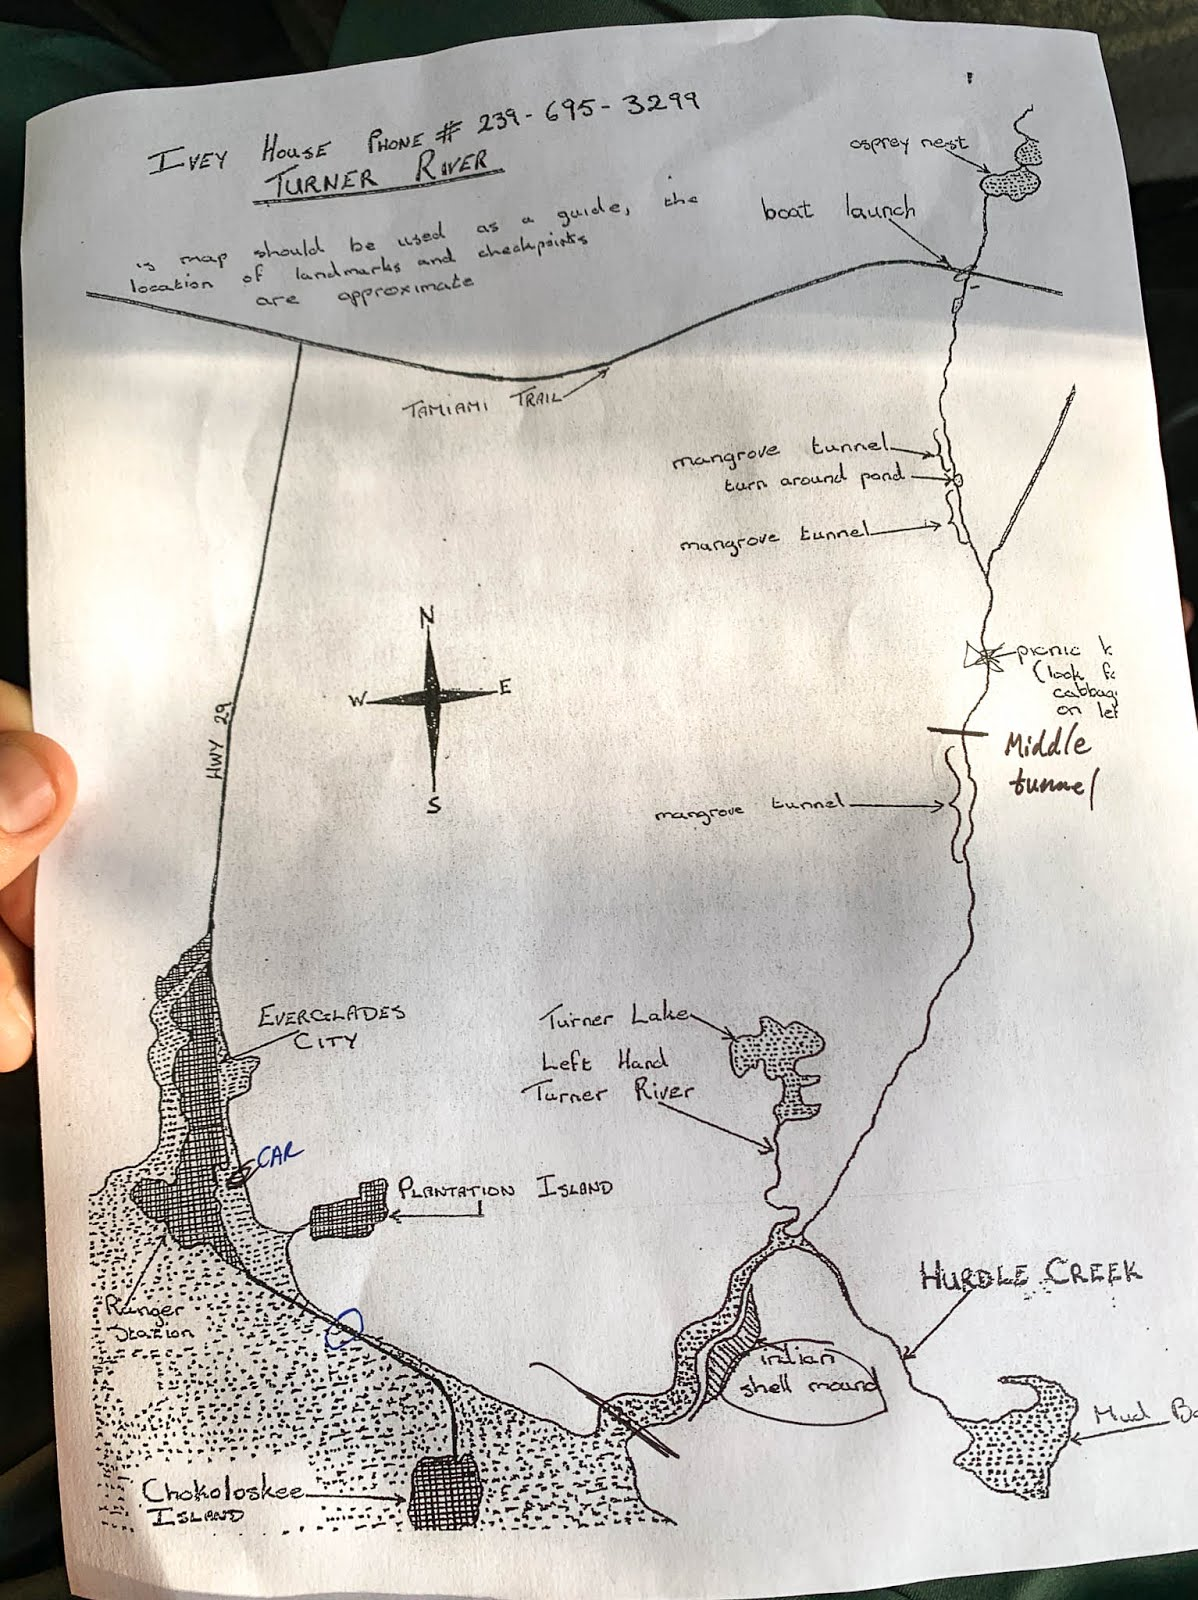 hight resolution of we settled on doing the length of the turner river which would let us experience the freshwater to saltwater transition in addition to the mangrove tunnels